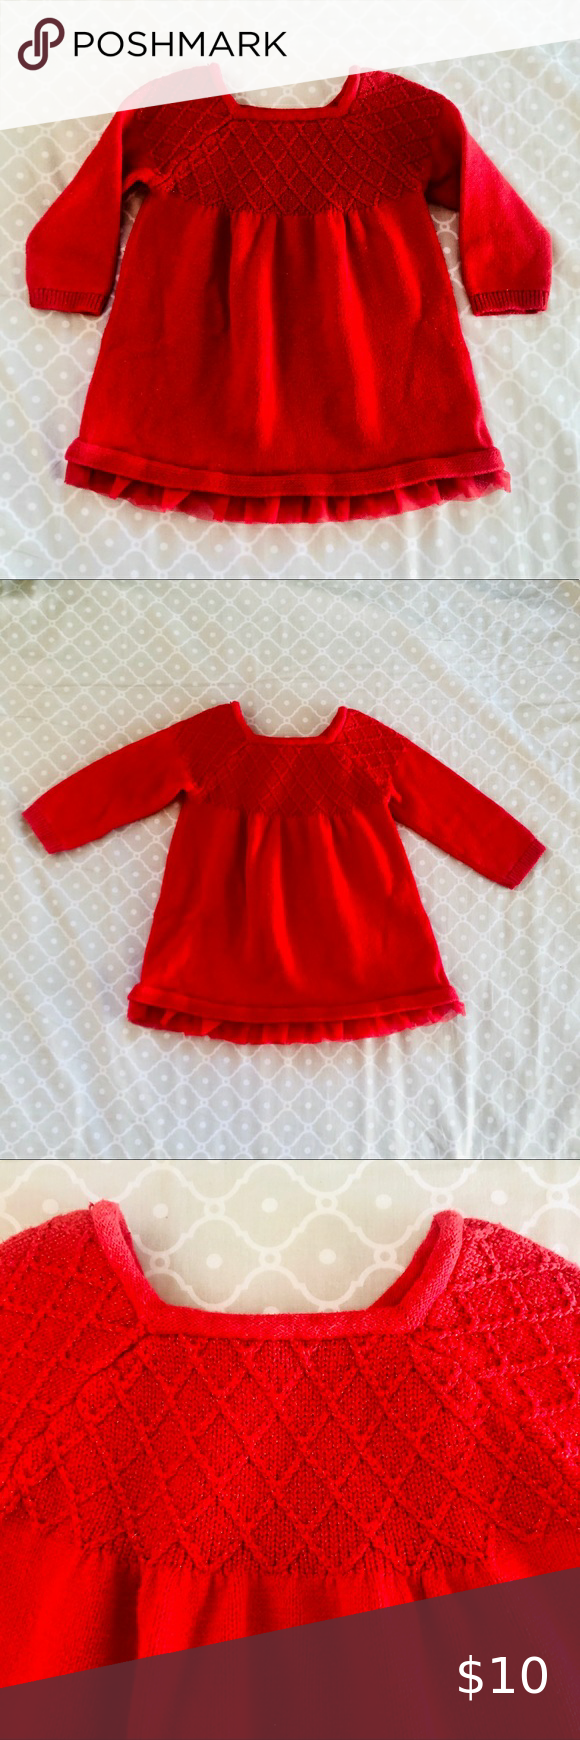 3 For 20 Baby Girl Red Cotton Sweater Dress Cotton Sweater Dress Girls Long Sleeve Dresses Sweater Dress [ 1740 x 580 Pixel ]